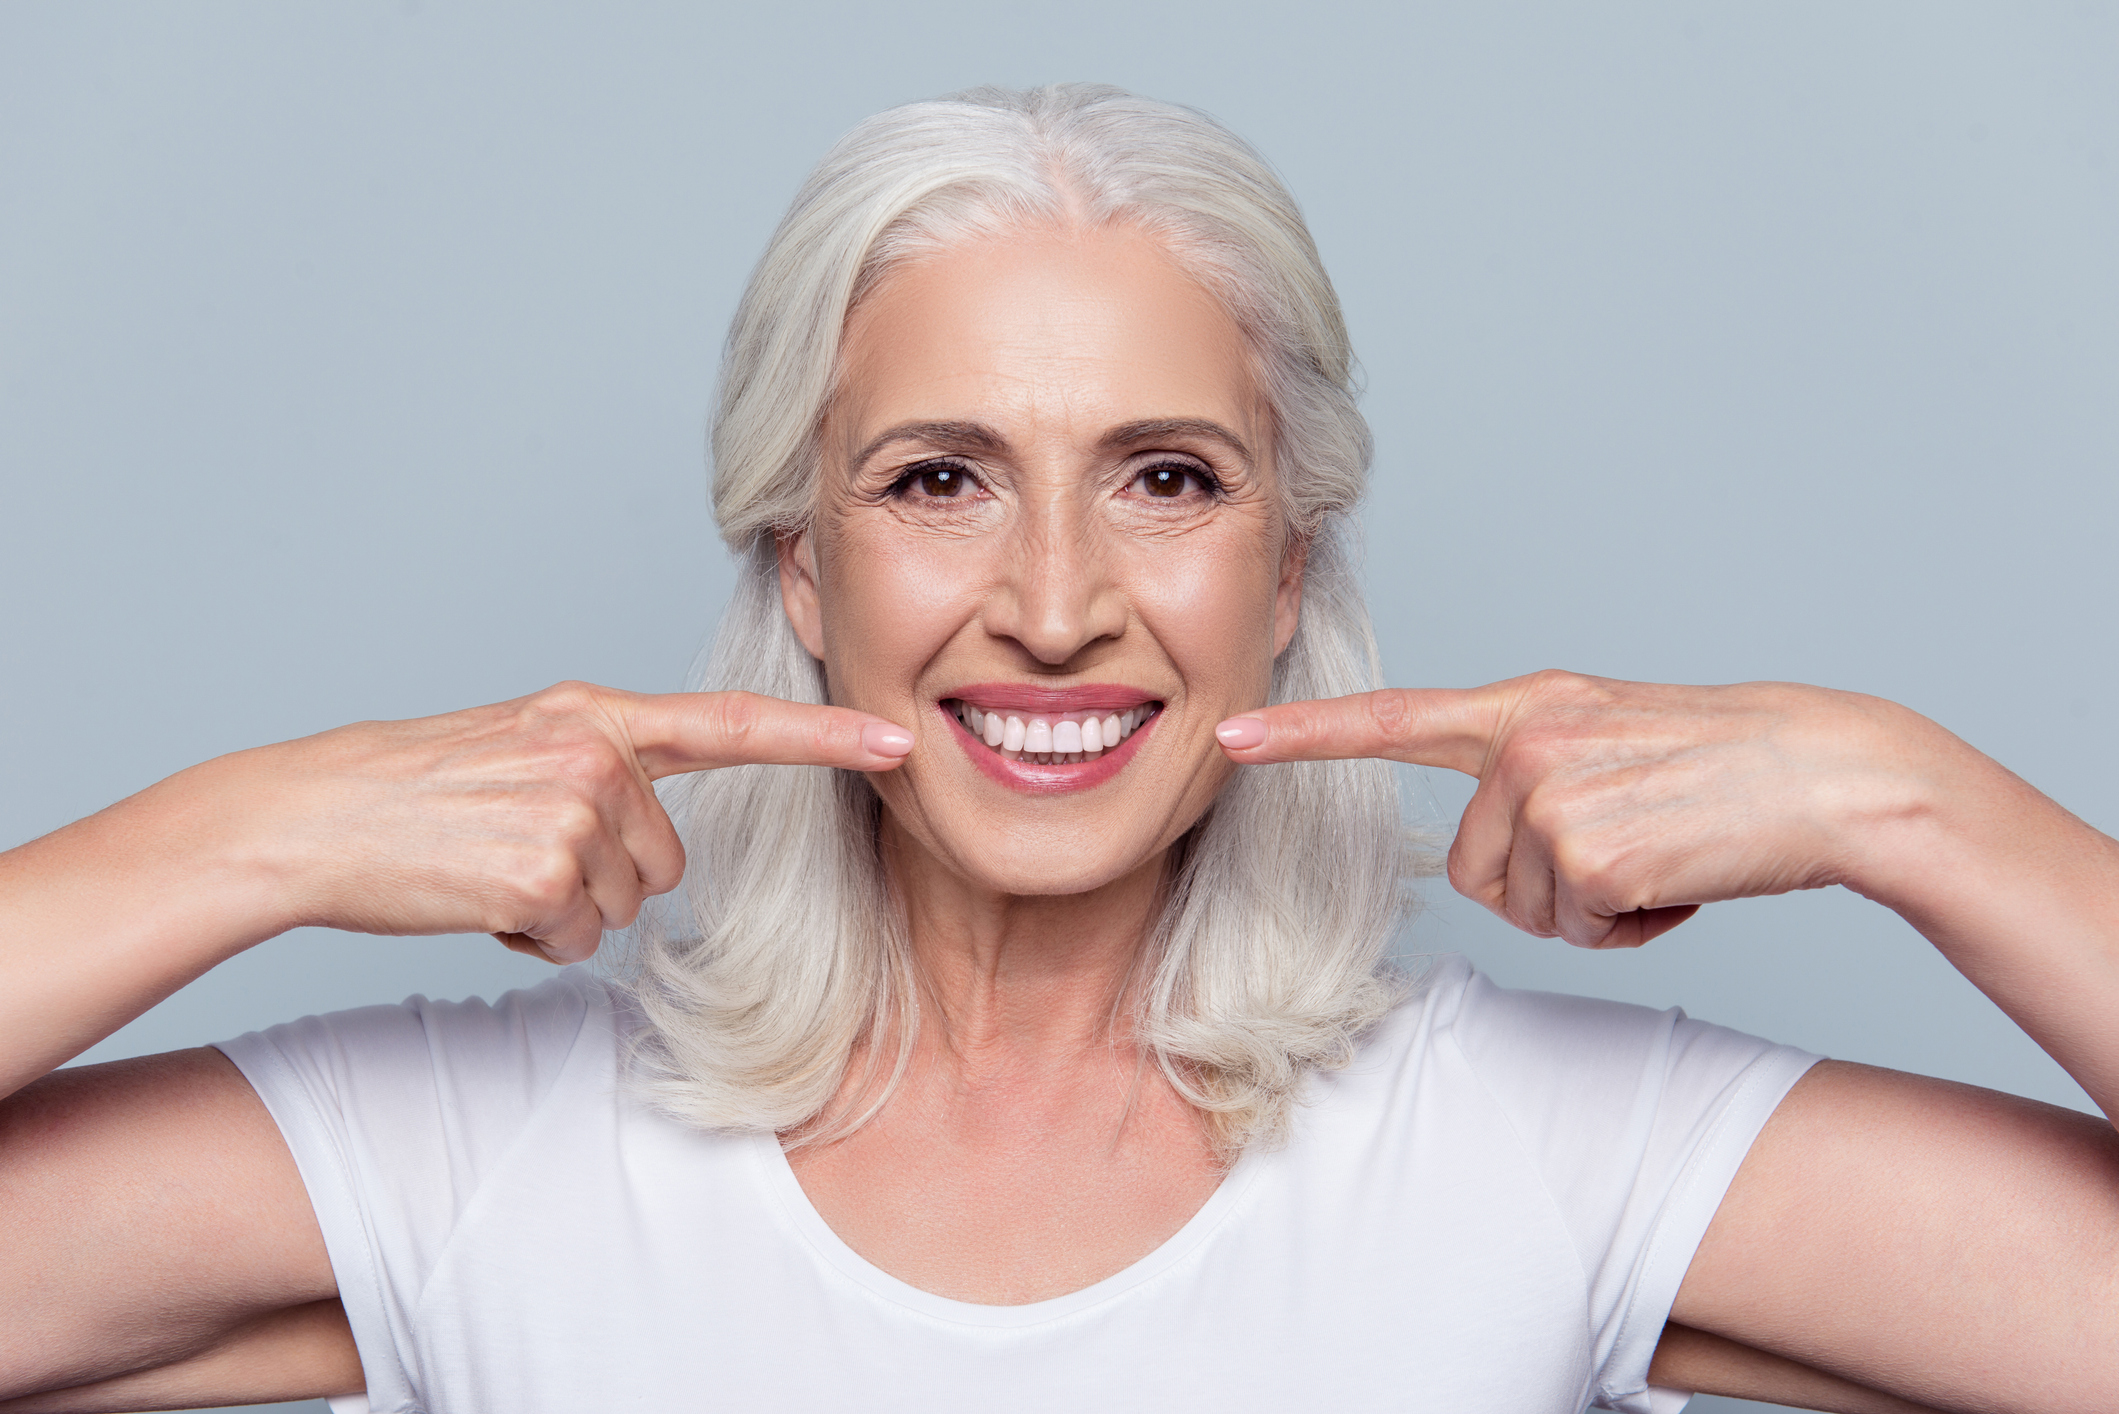 B19_Smiling-older-woman-pointing-to-both-sides-of-her-mouth